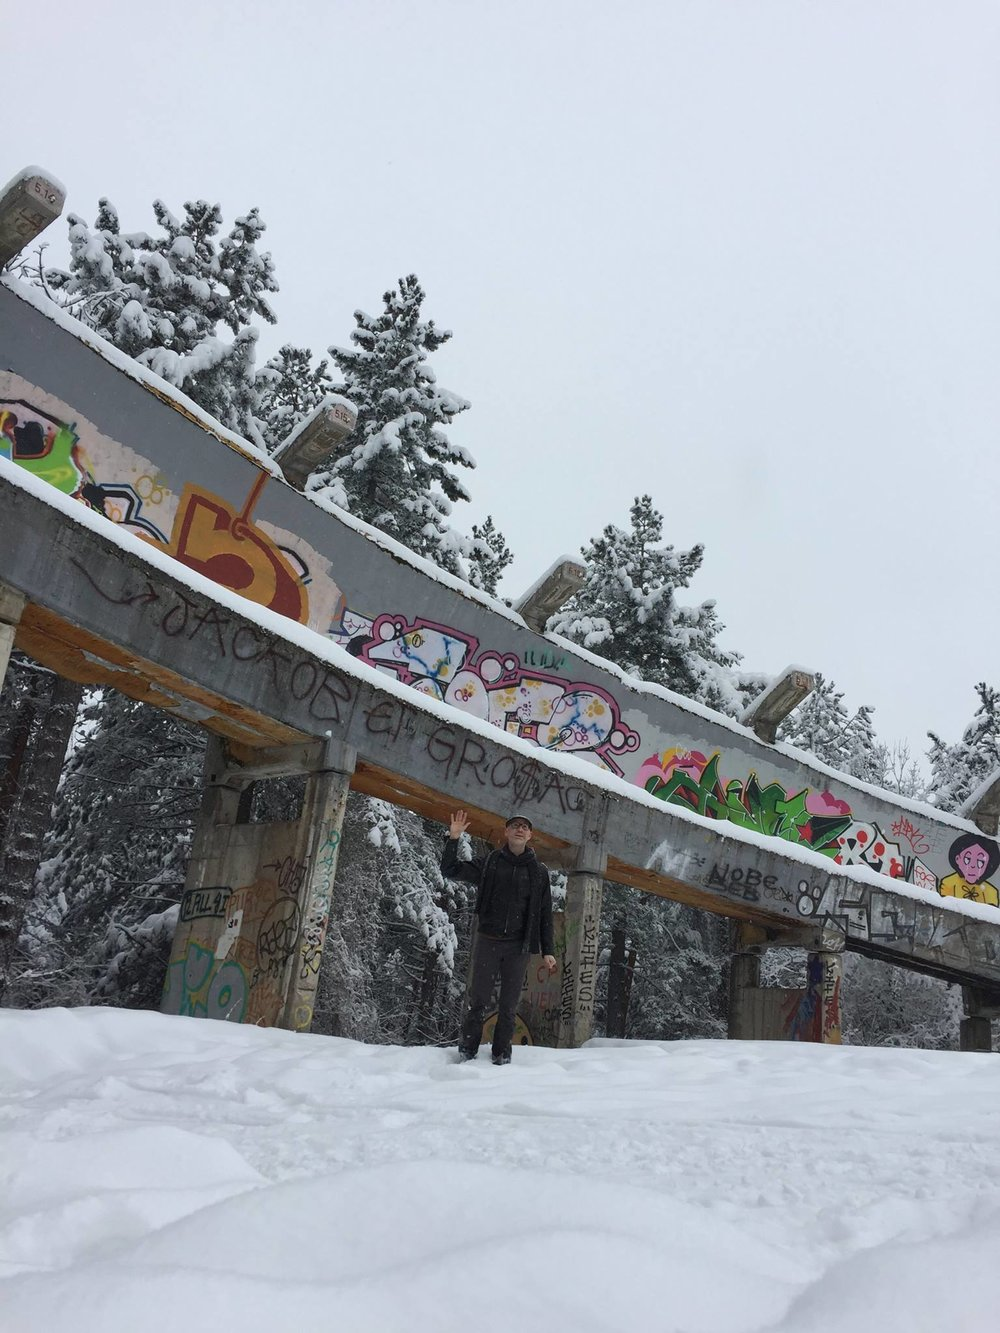 Bobsled Run from the 1984 Winter Olympics